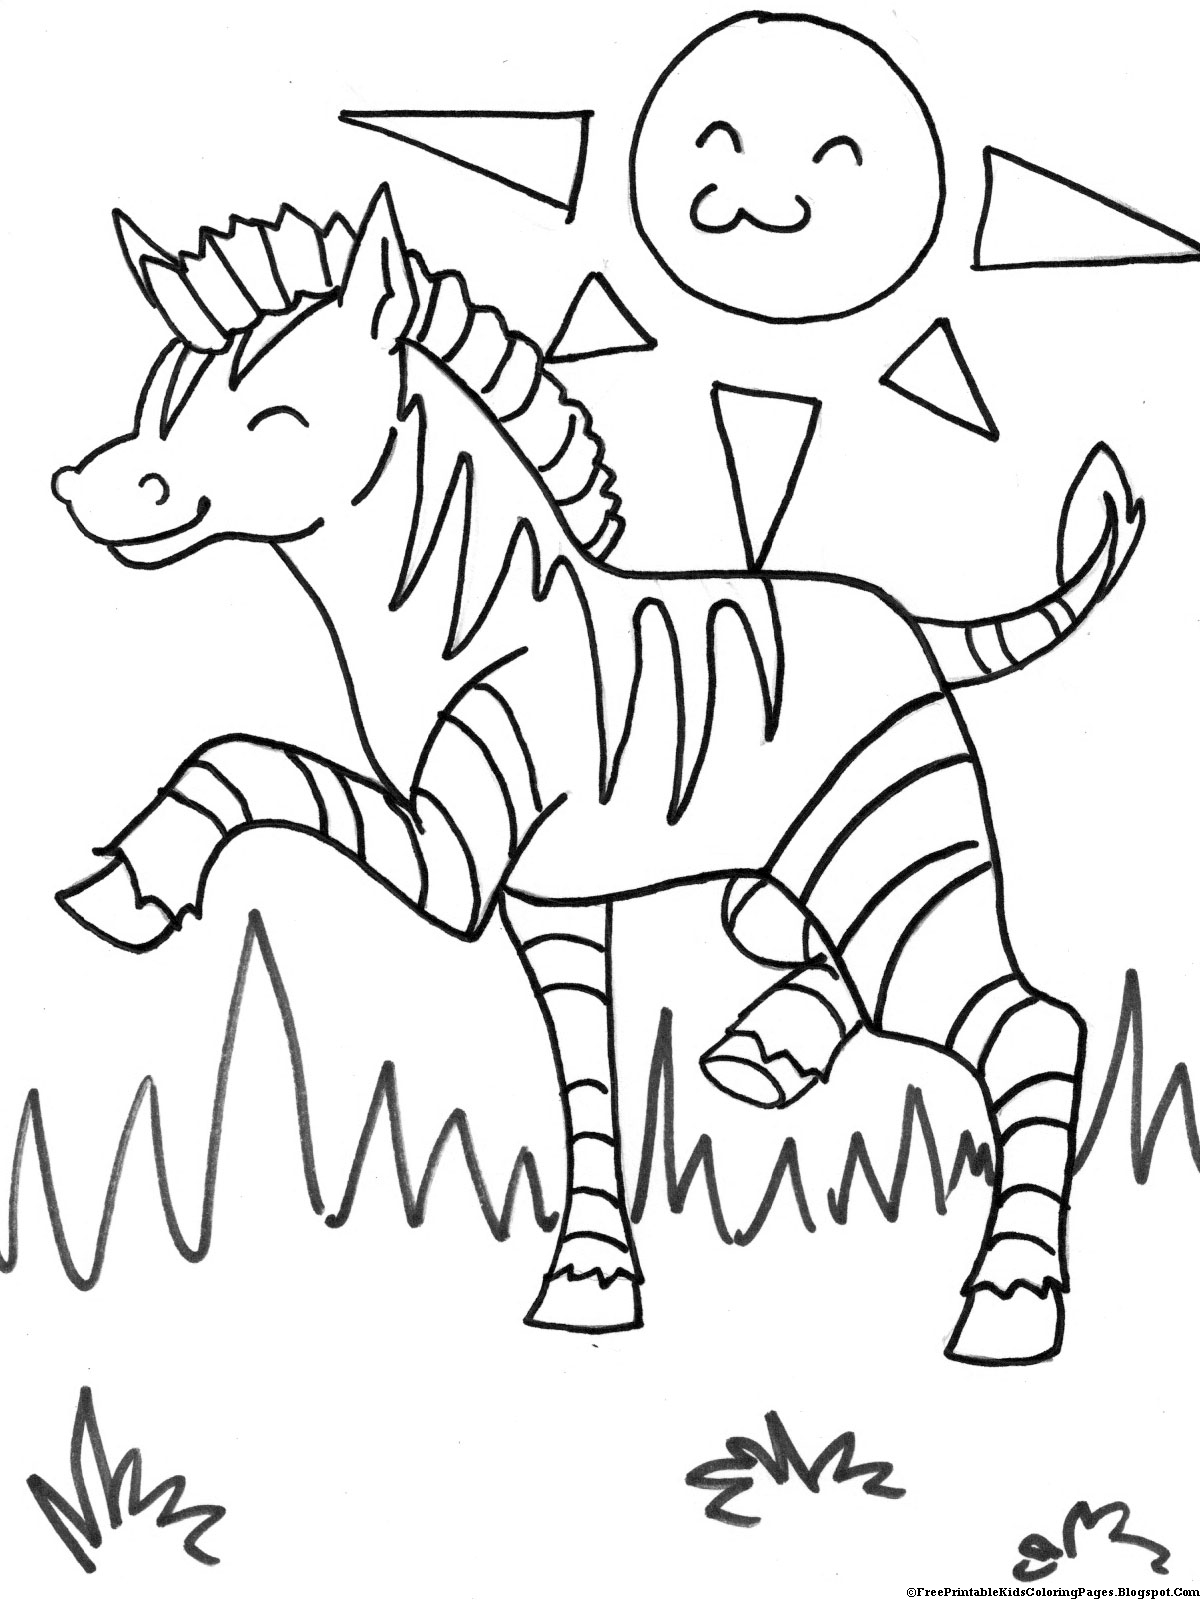 coloring sheets kids cartoon coloring pages coloring pages to print sheets coloring kids